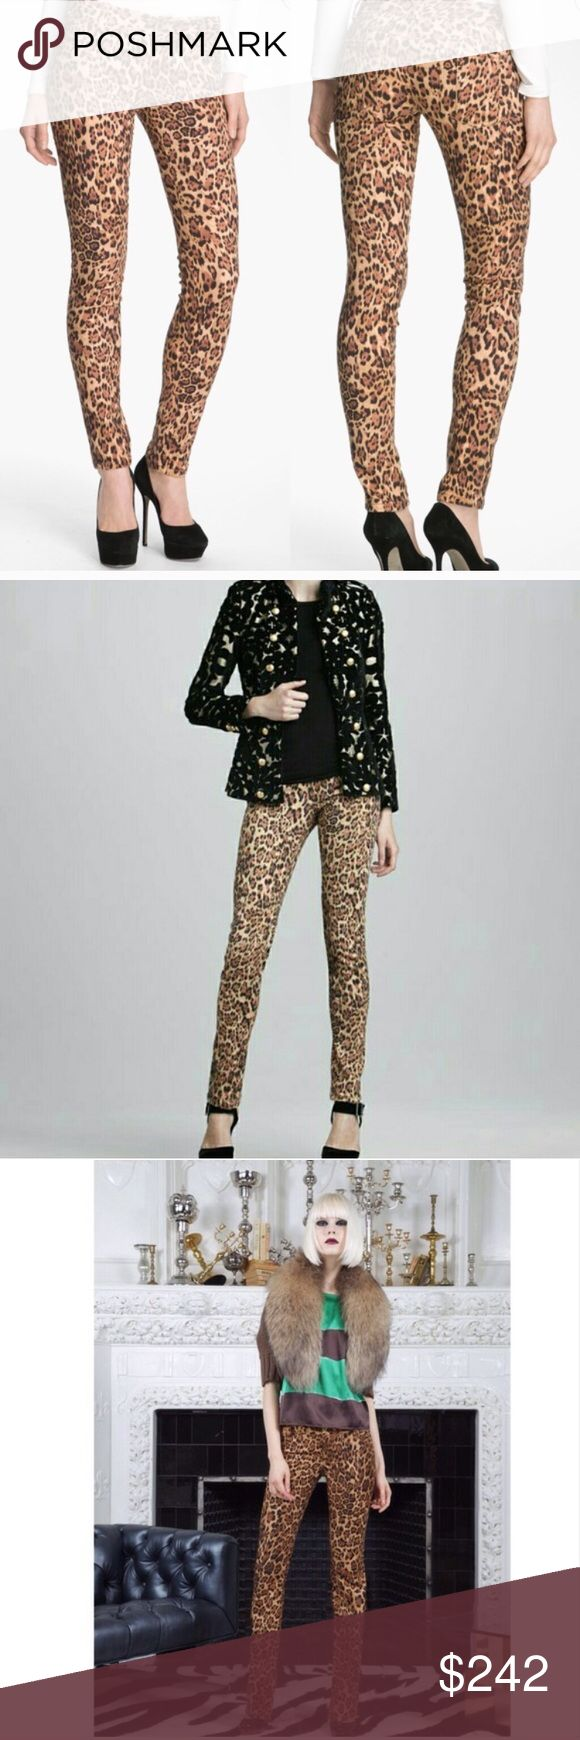 Alice + Olivia Leopard Animal Print Skinny Jeans Amazing pair of skinny jeans in a leopard print. The perfect way to mix up your closet. Stretchy with 3% spandex. Excellent condition. Made in USA. Inseam 33in. Rise 8in. Waist 15in. Bundles and offers welcome! Alice + Olivia Jeans Skinny